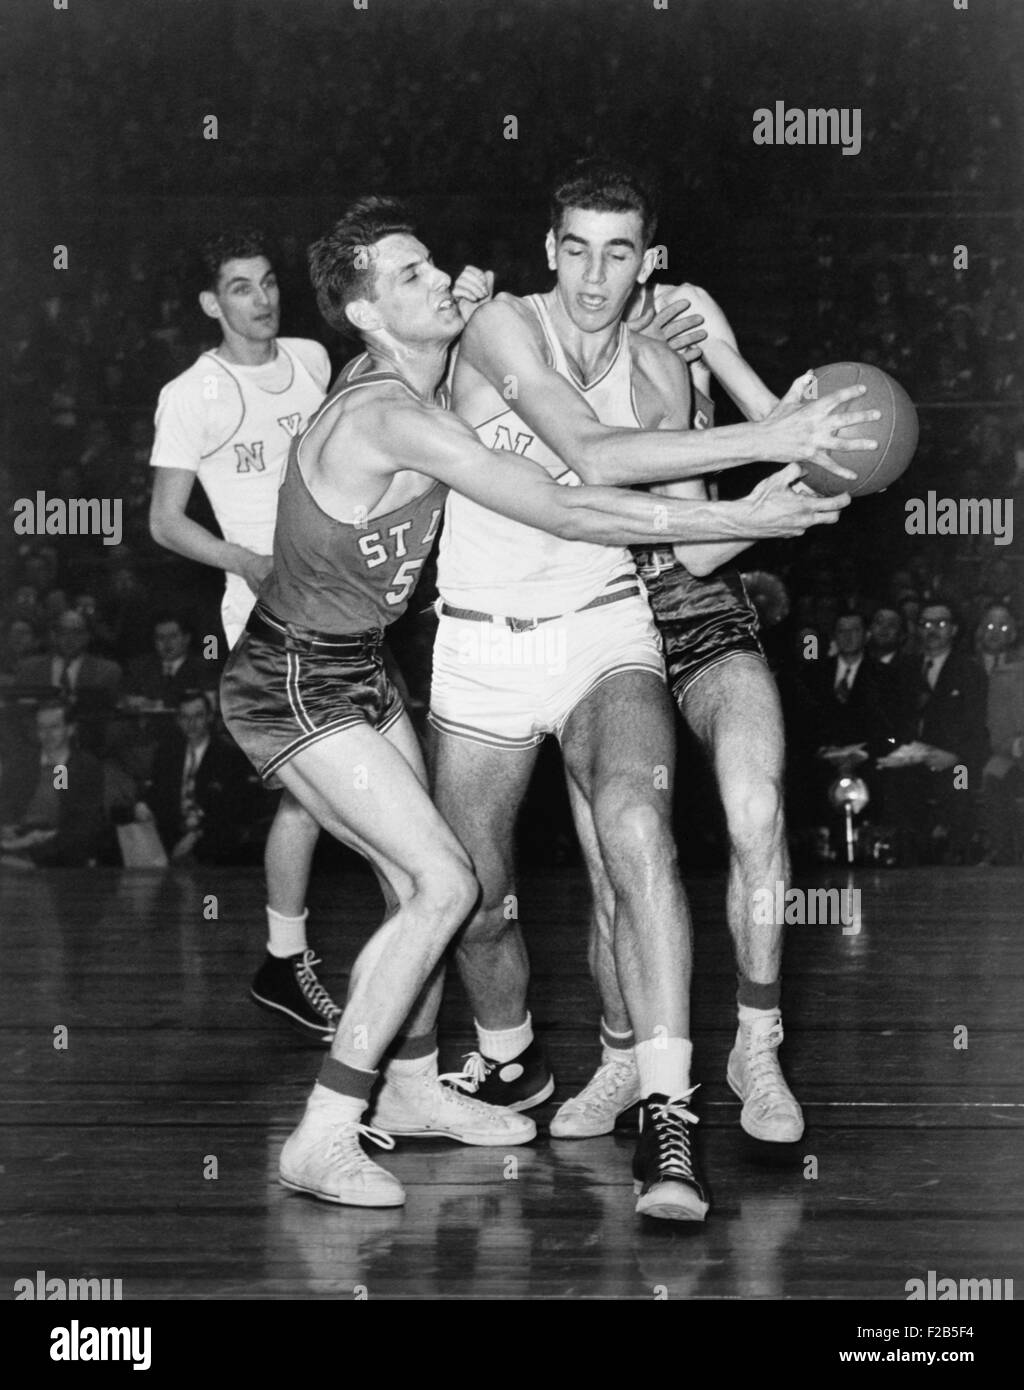 Adolph 'Dolph' Schayes keeping the basketball away from Joe Ossola of St. Louis University, 1948. Schayes, - Stock Image